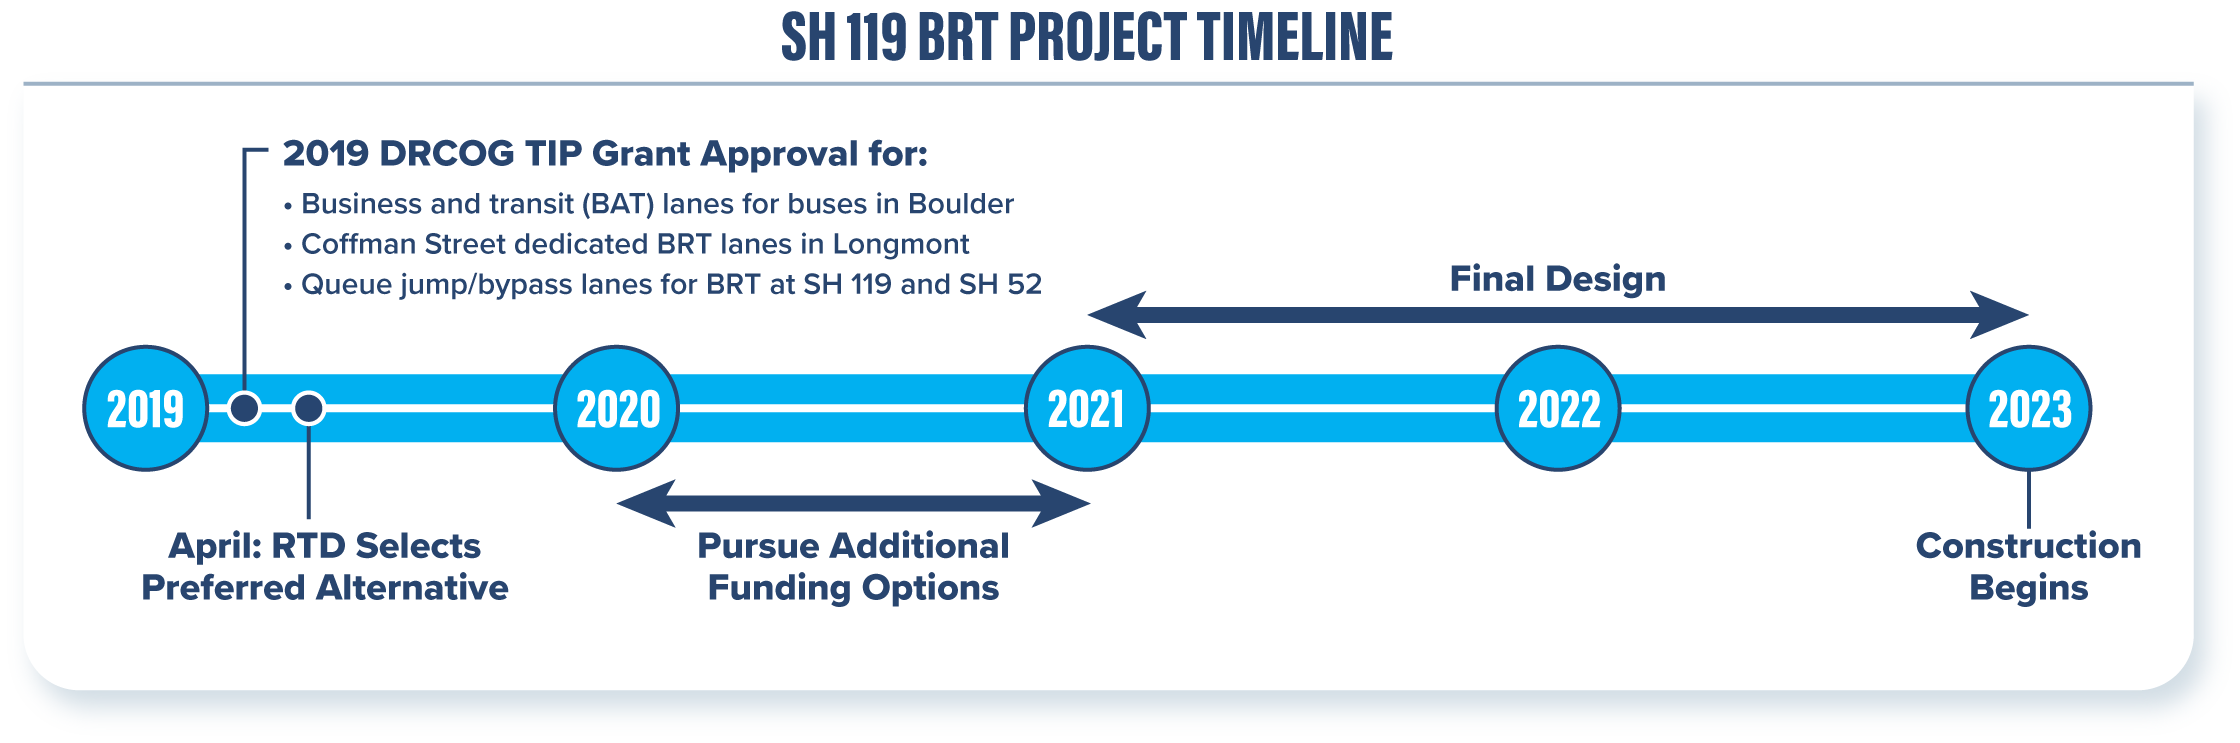 Project Timeline2.png